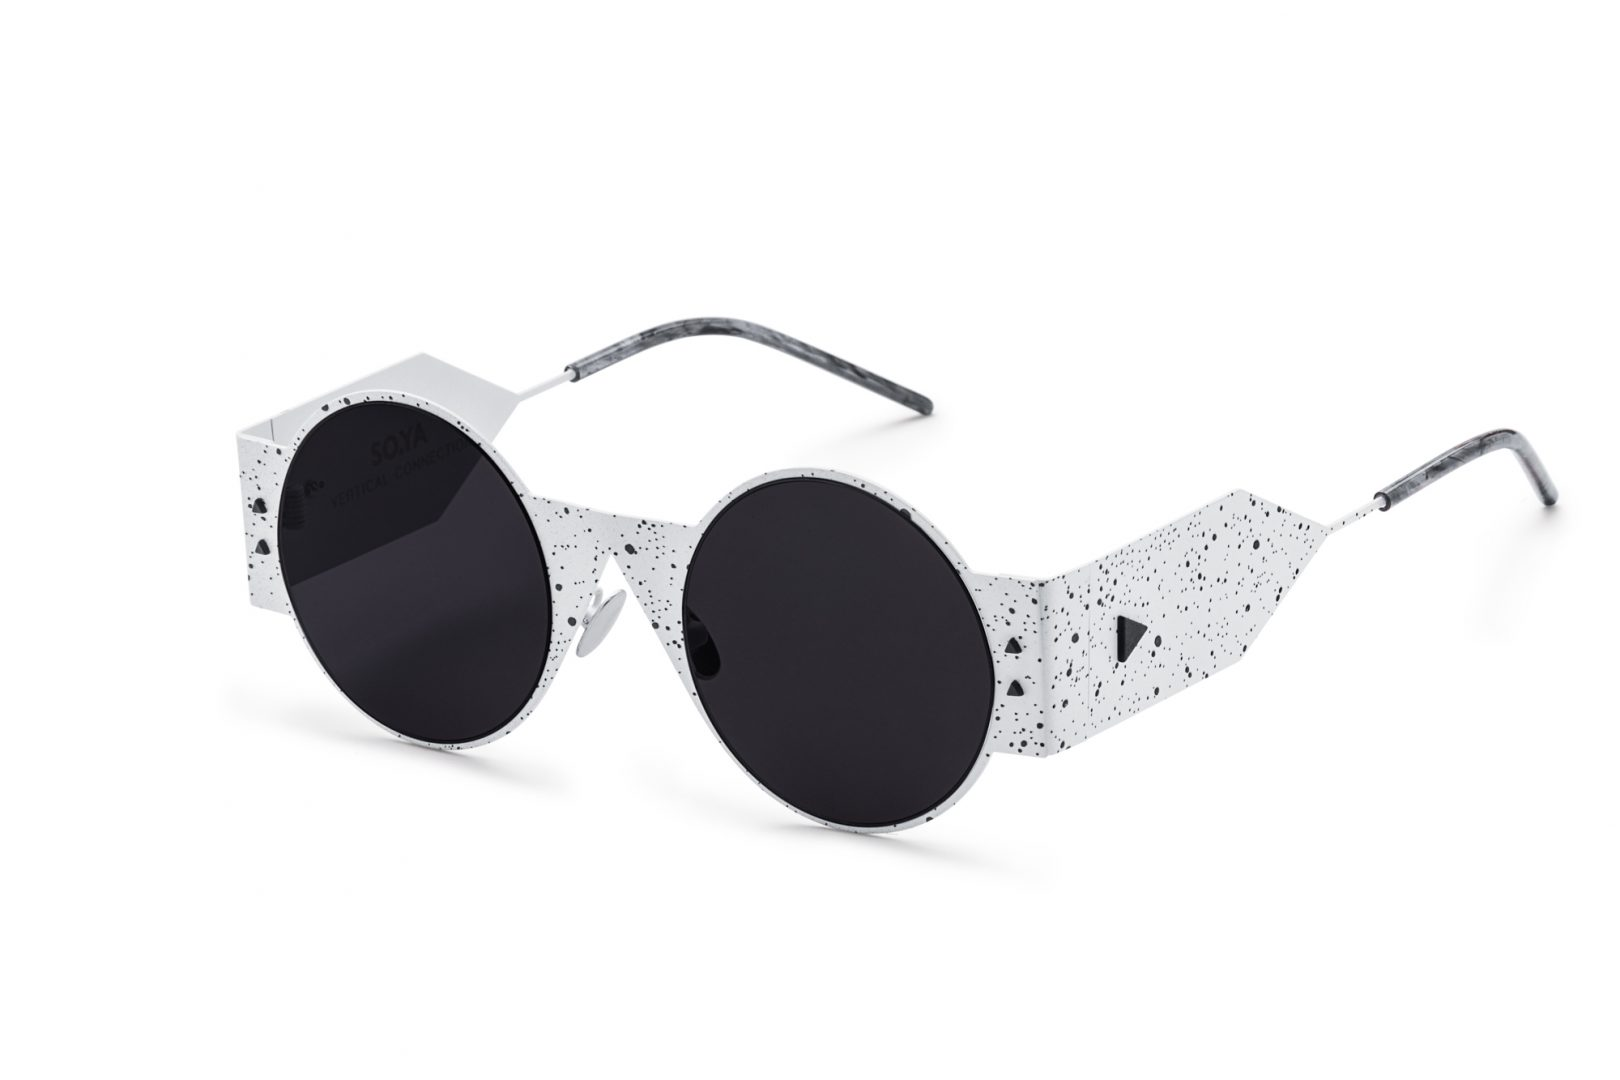 SO▲YA Vertical Connection New Iconic Eyewear Designs